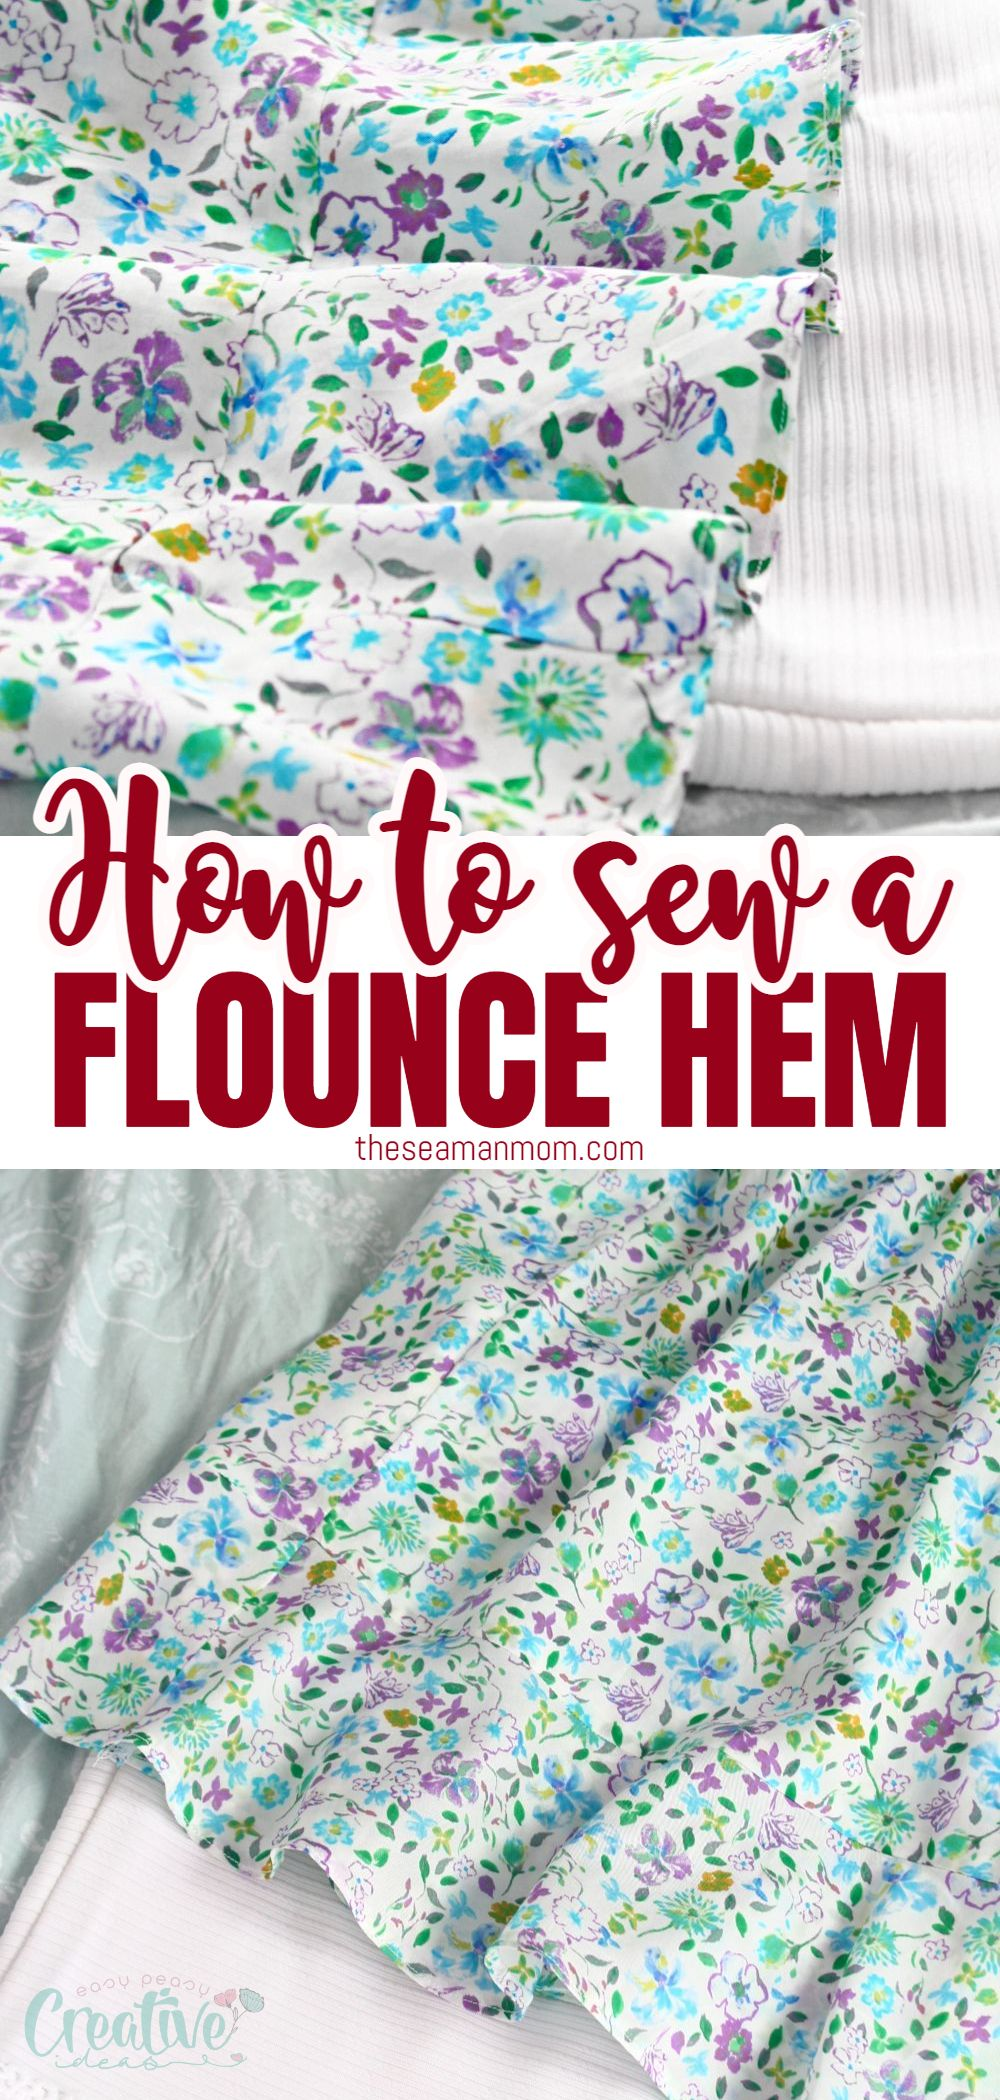 Did you know that there's more than just one way to sew beautiful ruffles? Here's how to make a flounce or a circular ruffle without gathering the fabric or using a special gathering or ruffling foot! via @petroneagu